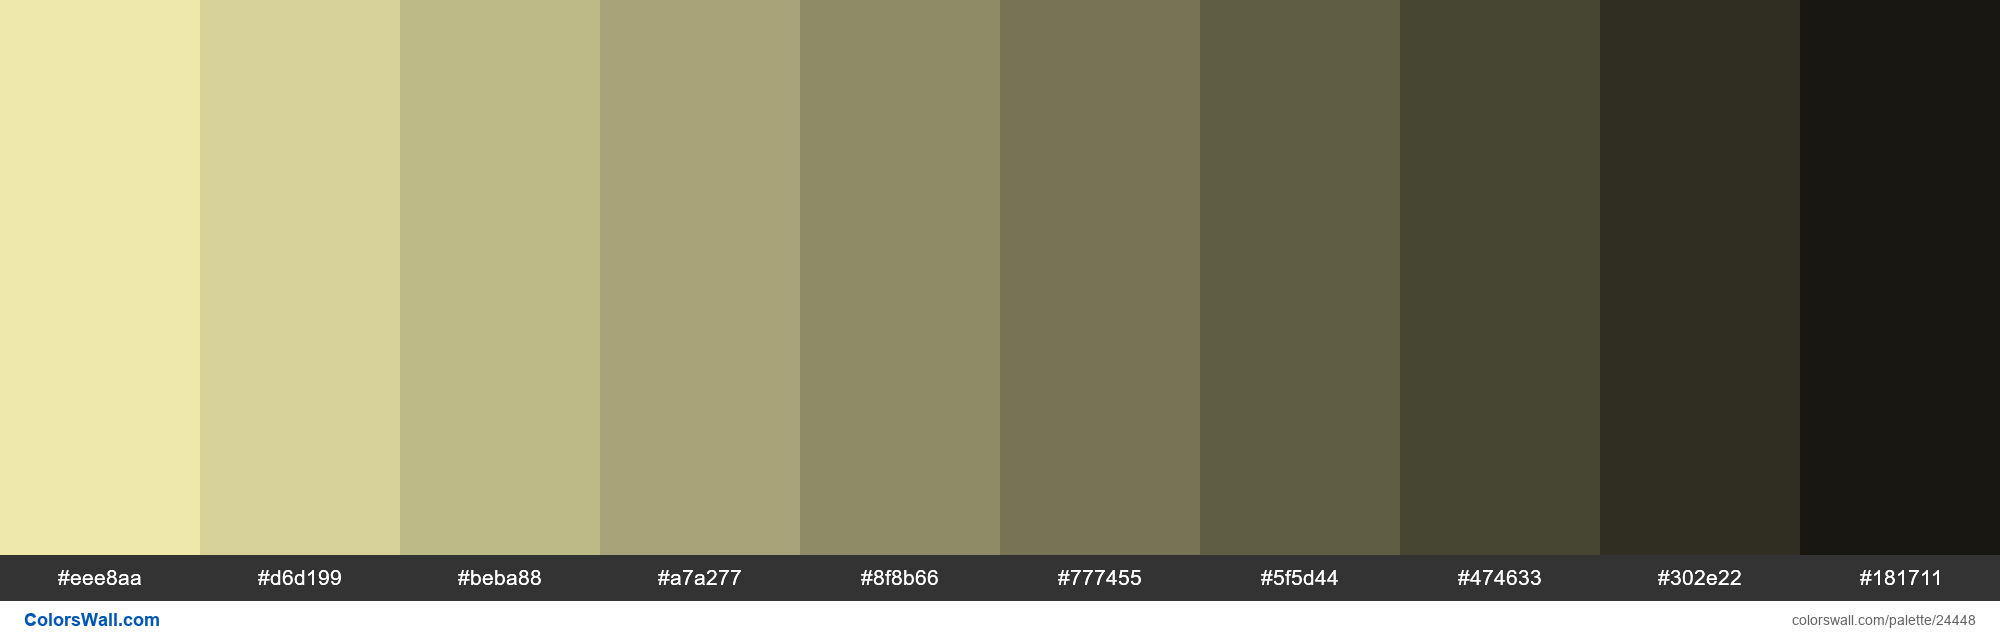 Shades of Pale Golden Rod #EEE8AA hex color - #24448